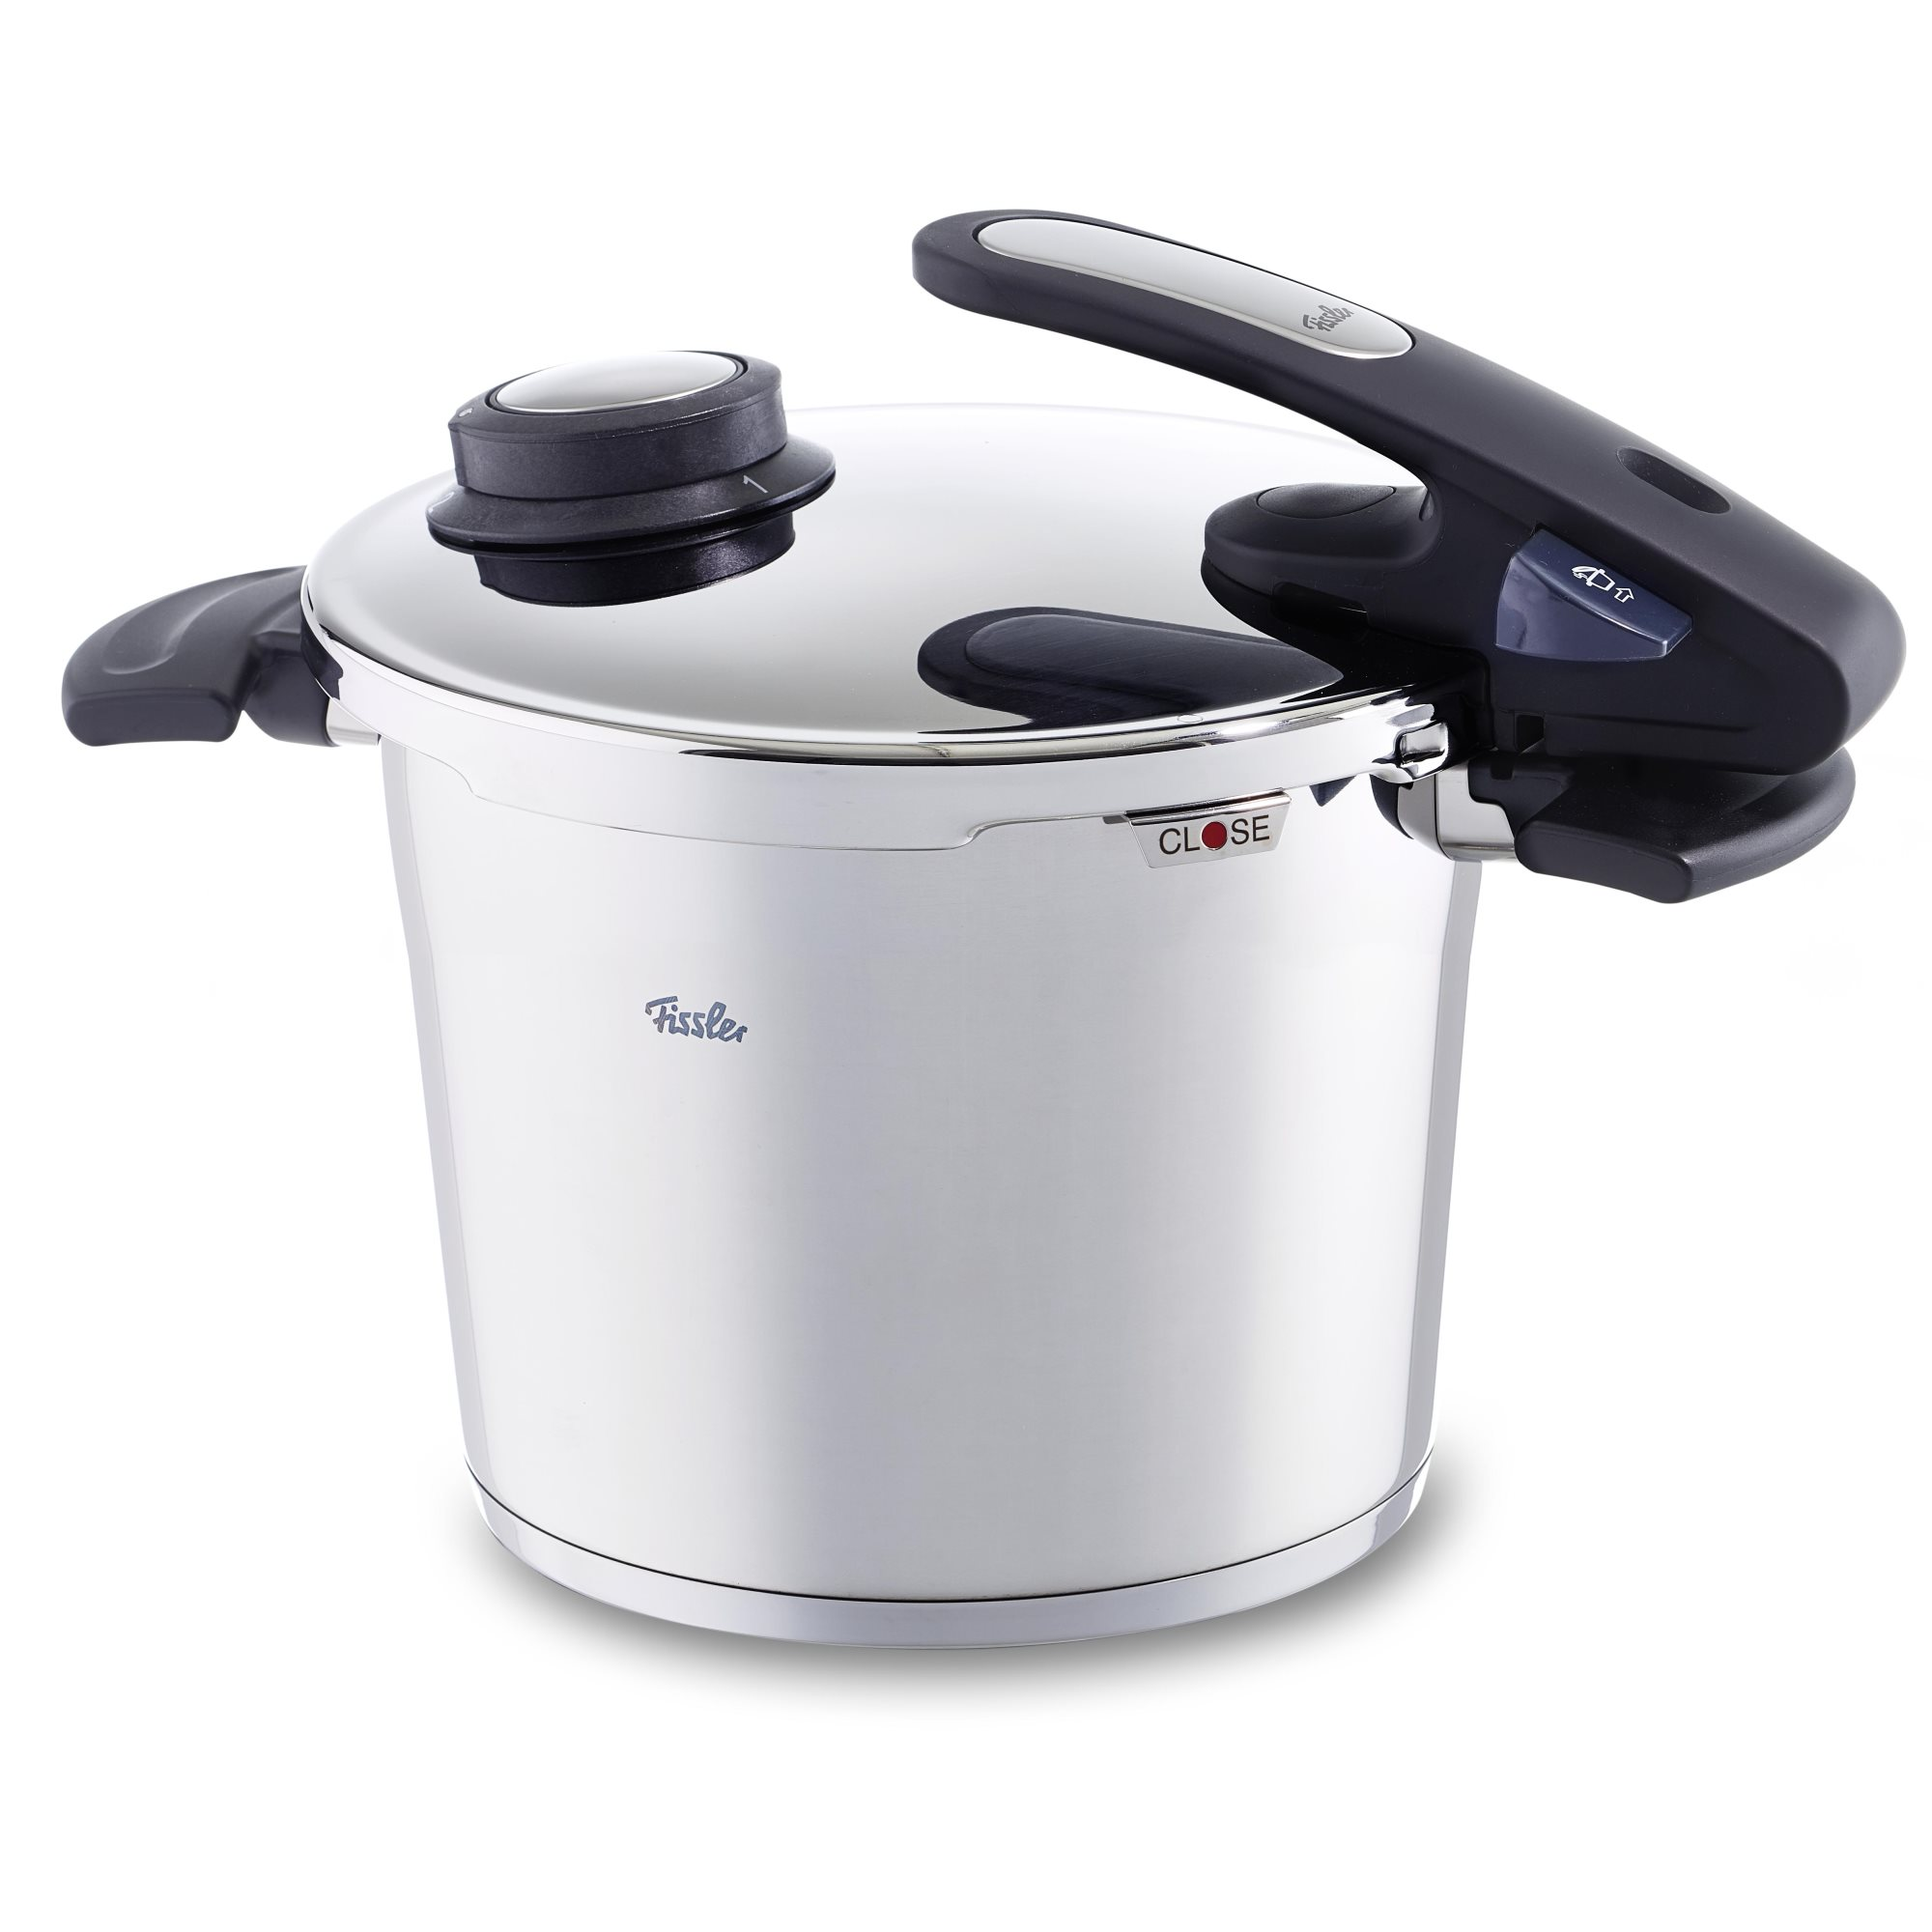 fissler schnellkochtopf vitavit edition 6 0 liter mit einsatz ebay. Black Bedroom Furniture Sets. Home Design Ideas